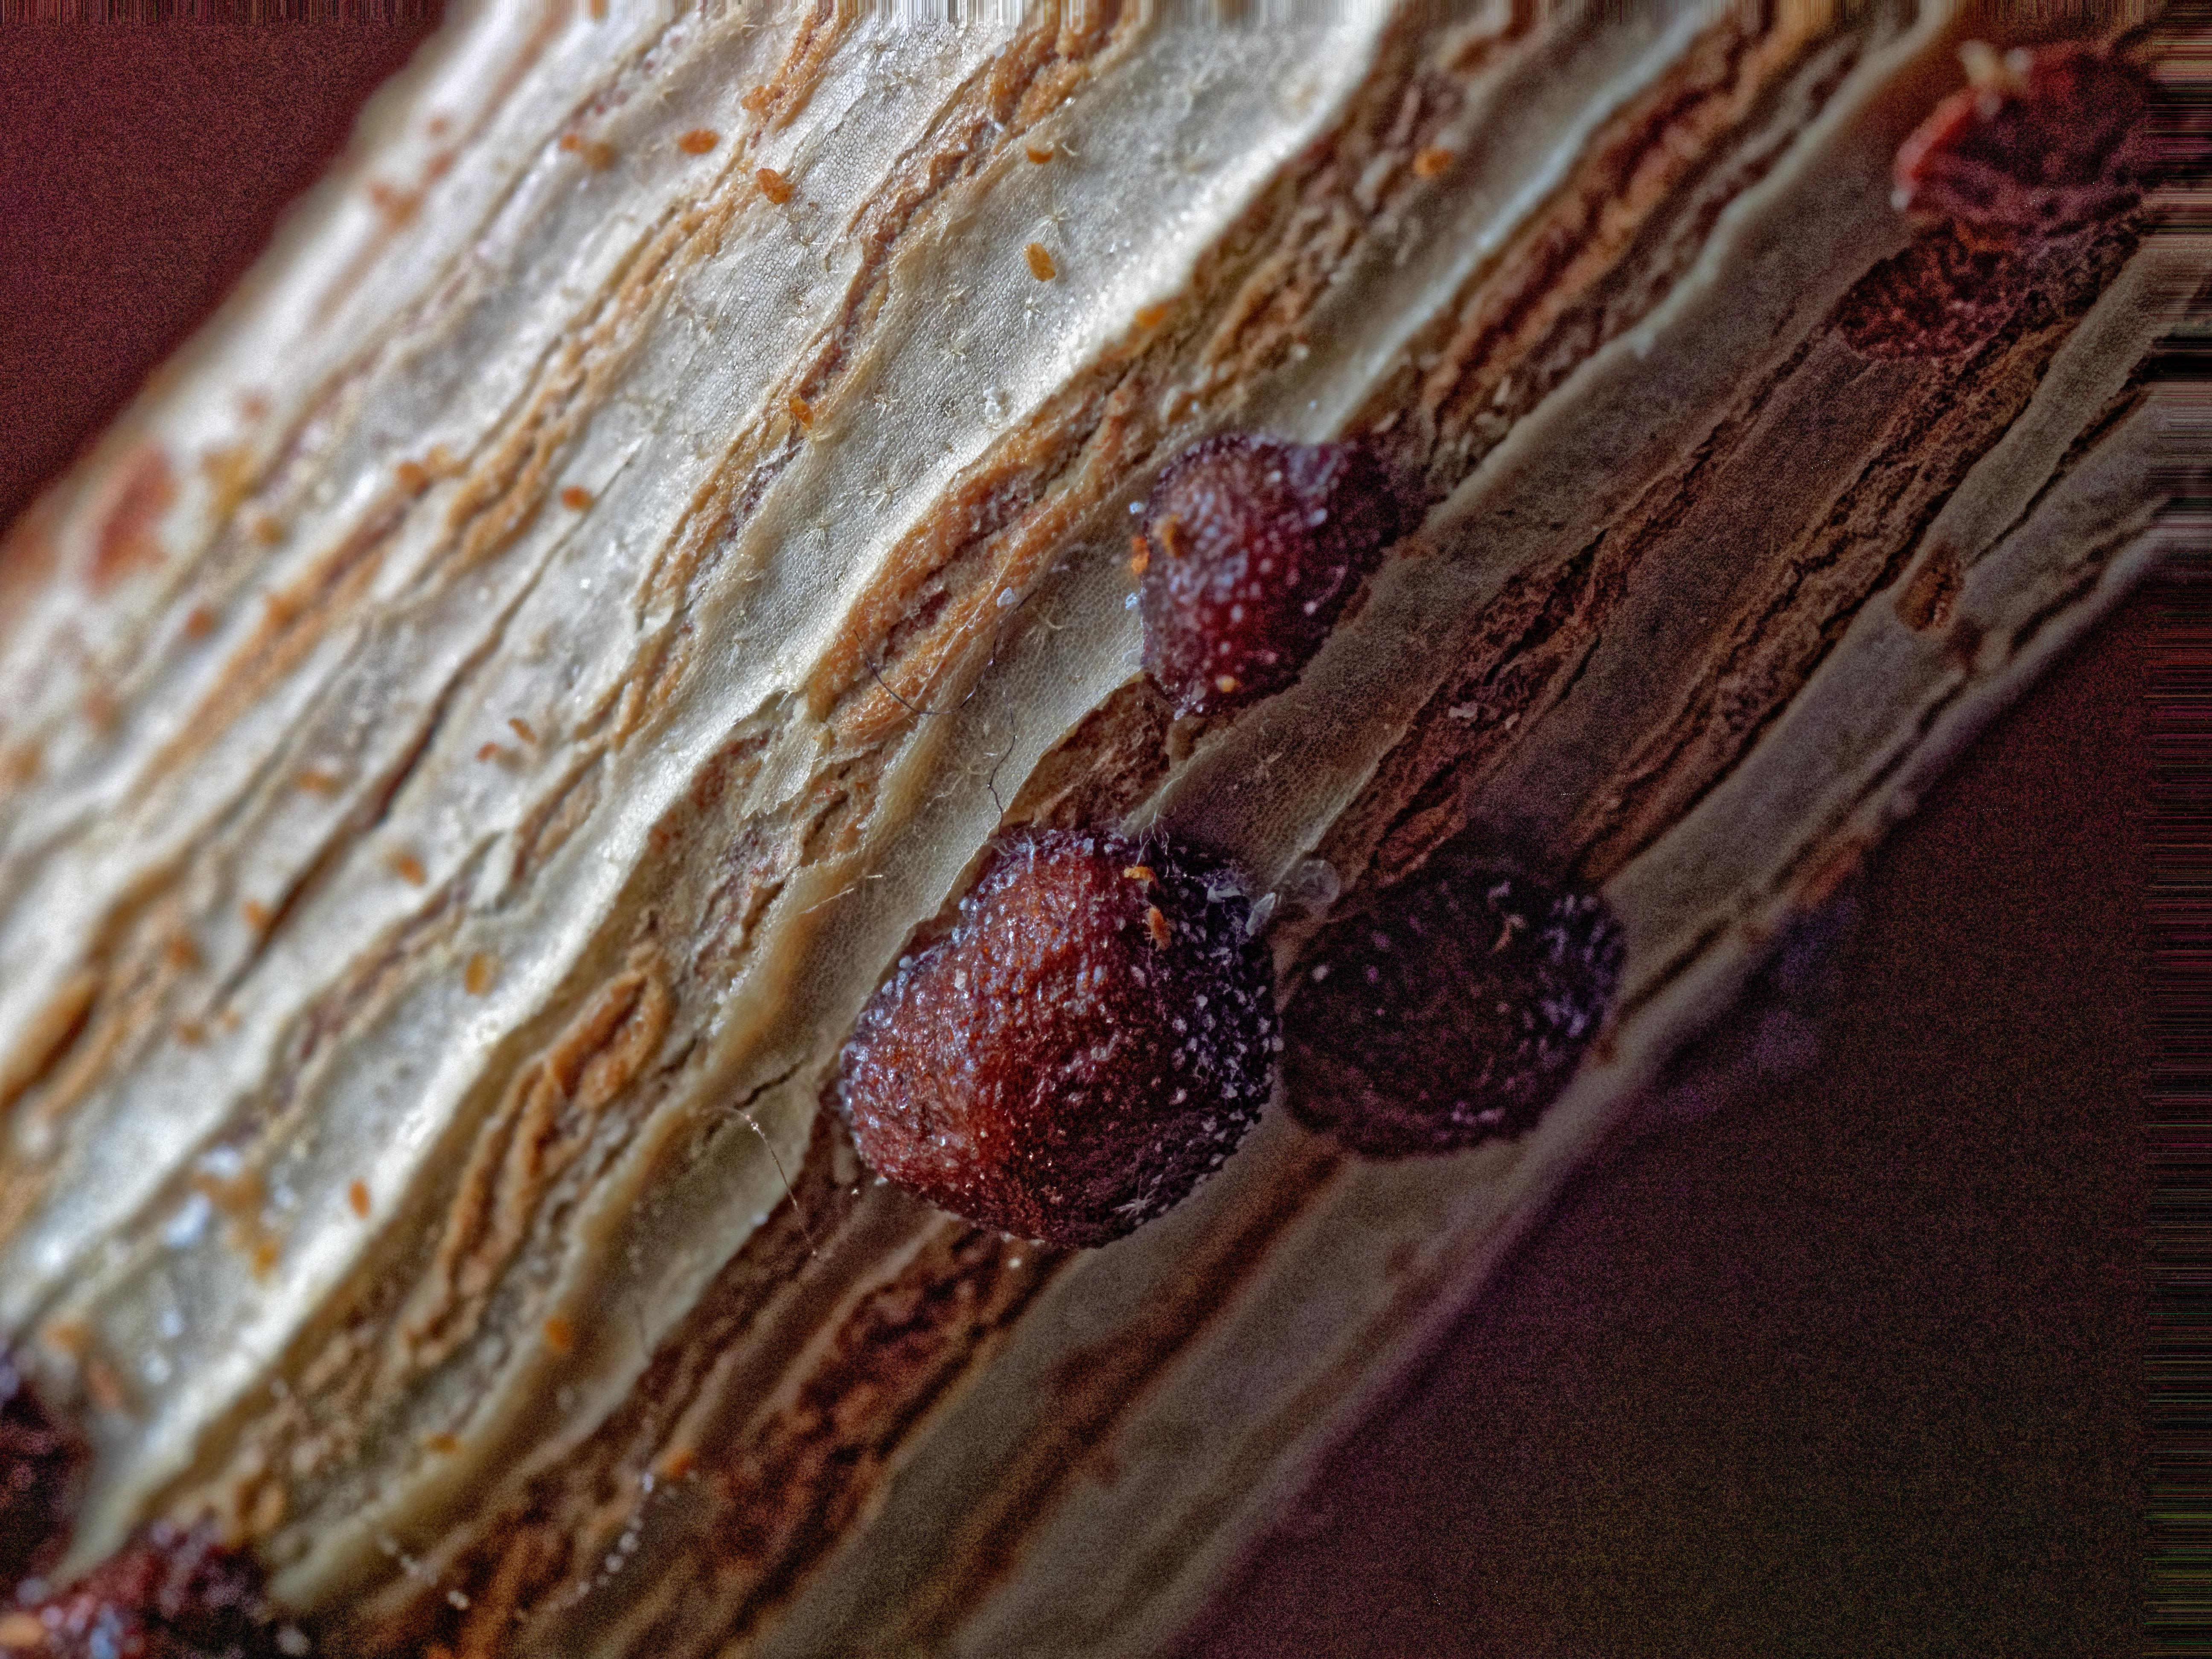 Scale-insects-4-PMax.jpeg